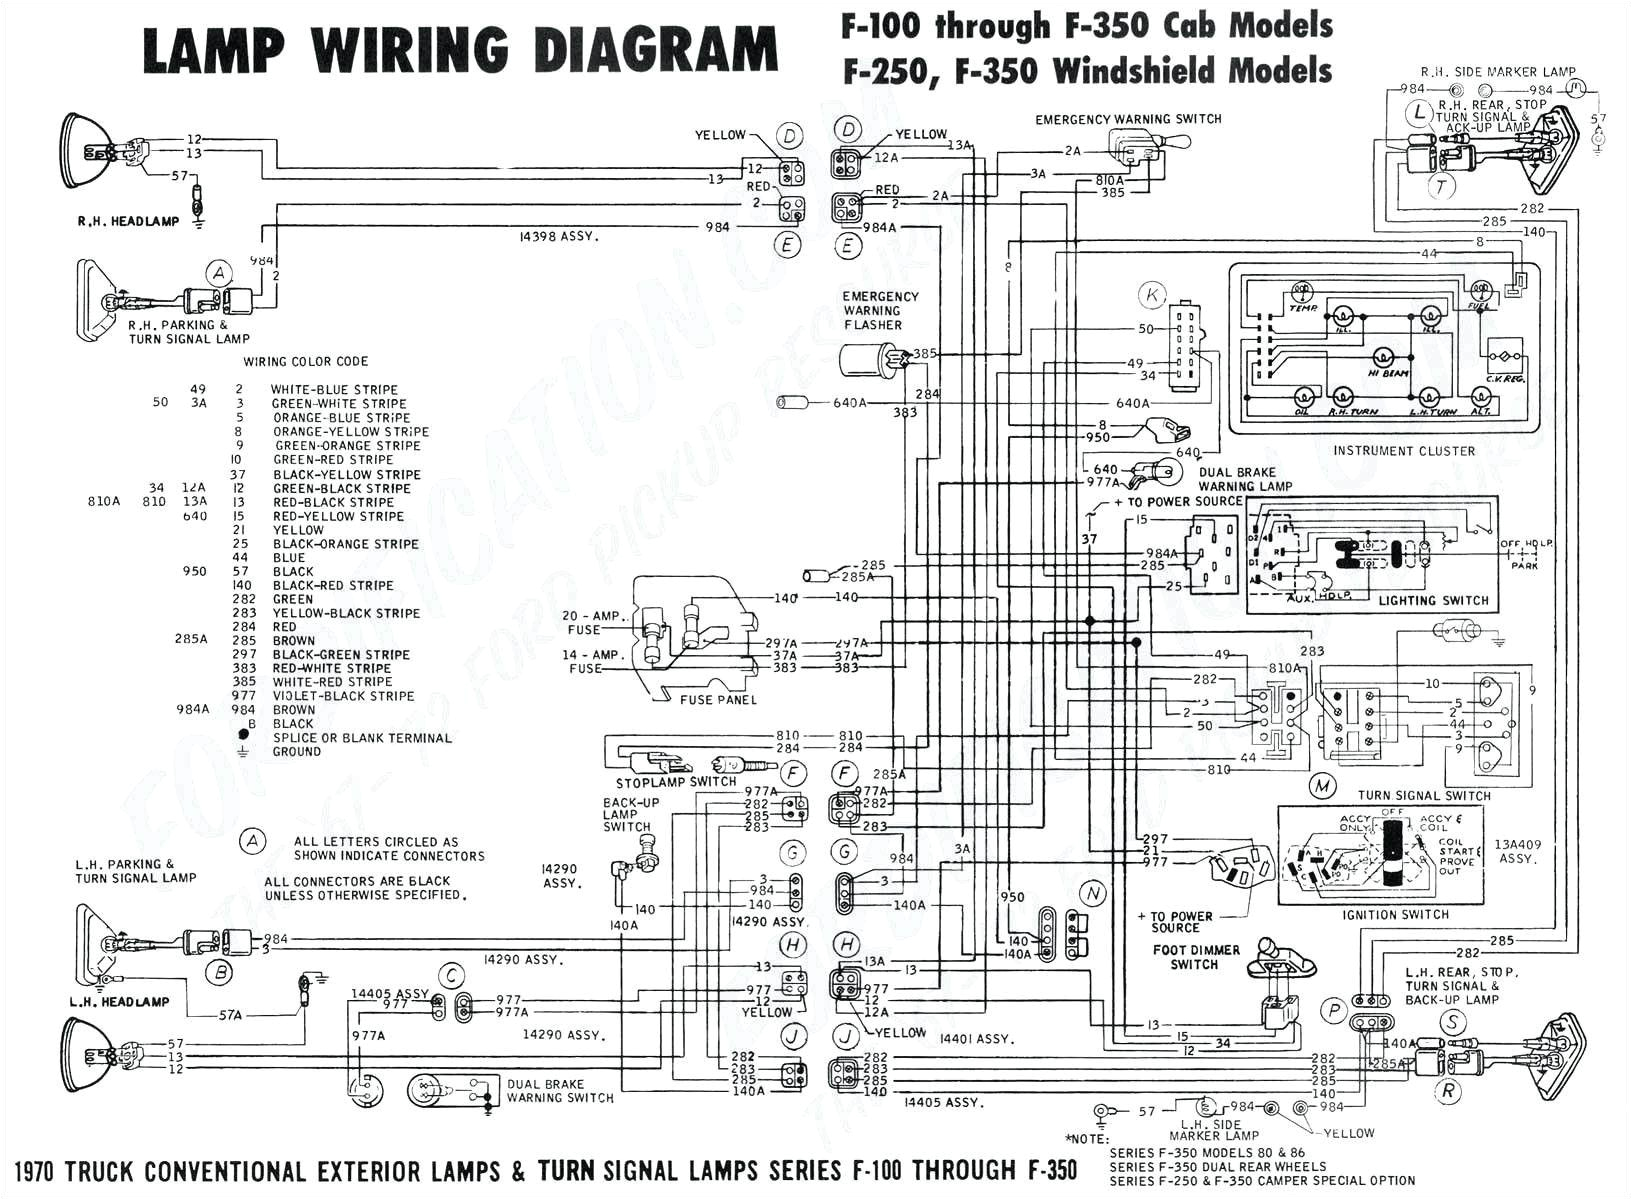 2000 toyota Camry Wiring Diagram Abbreviations for toyota Wiring Diagram Blog Wiring Diagram